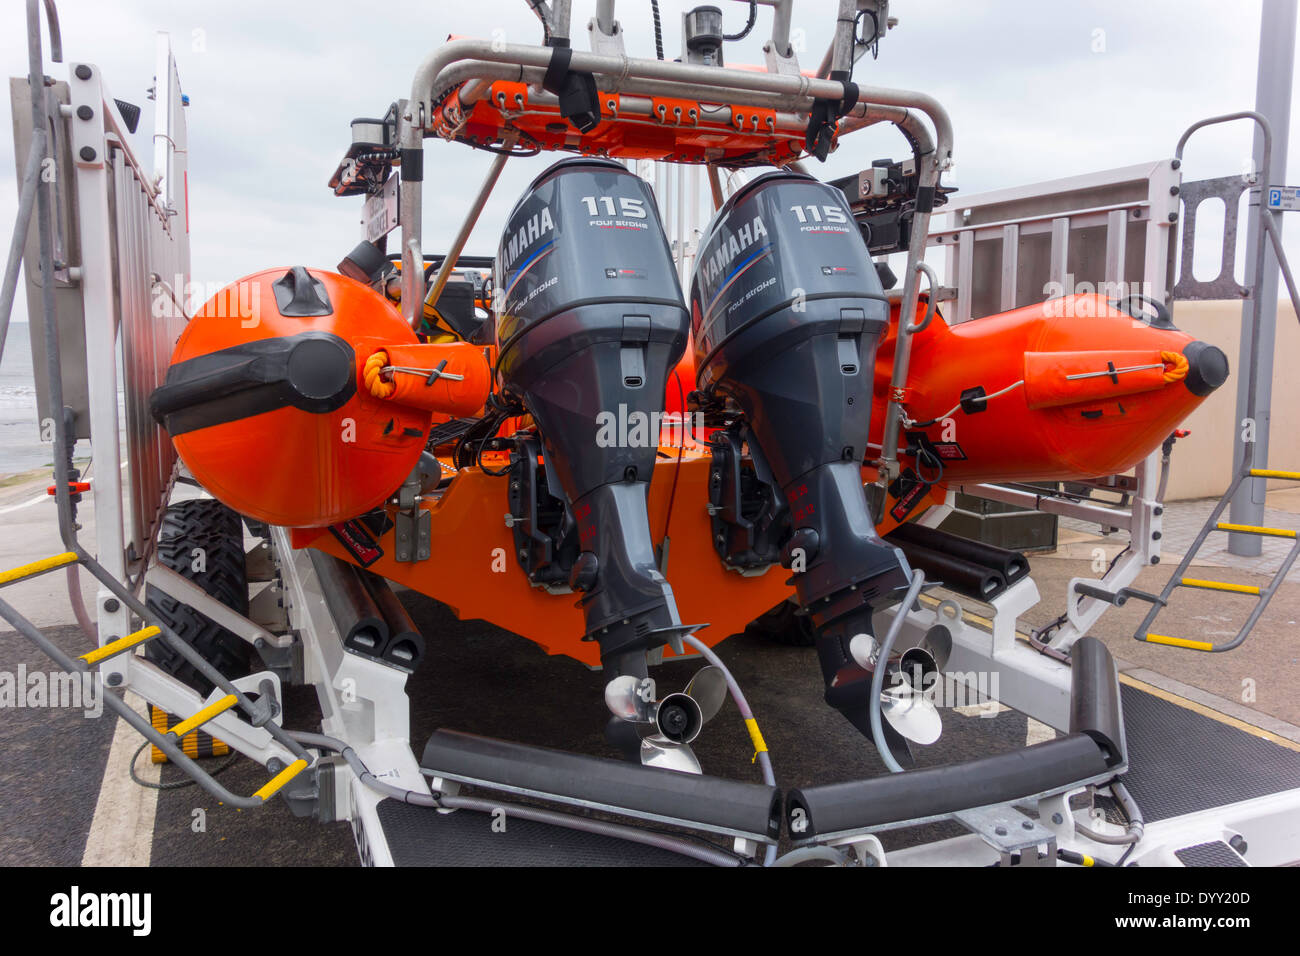 Detail of Redcar RNLI inshore lifeboat type IB1 named Leicester Challenge 1 showing powerful twin Yamaha outboard motors - Stock Image